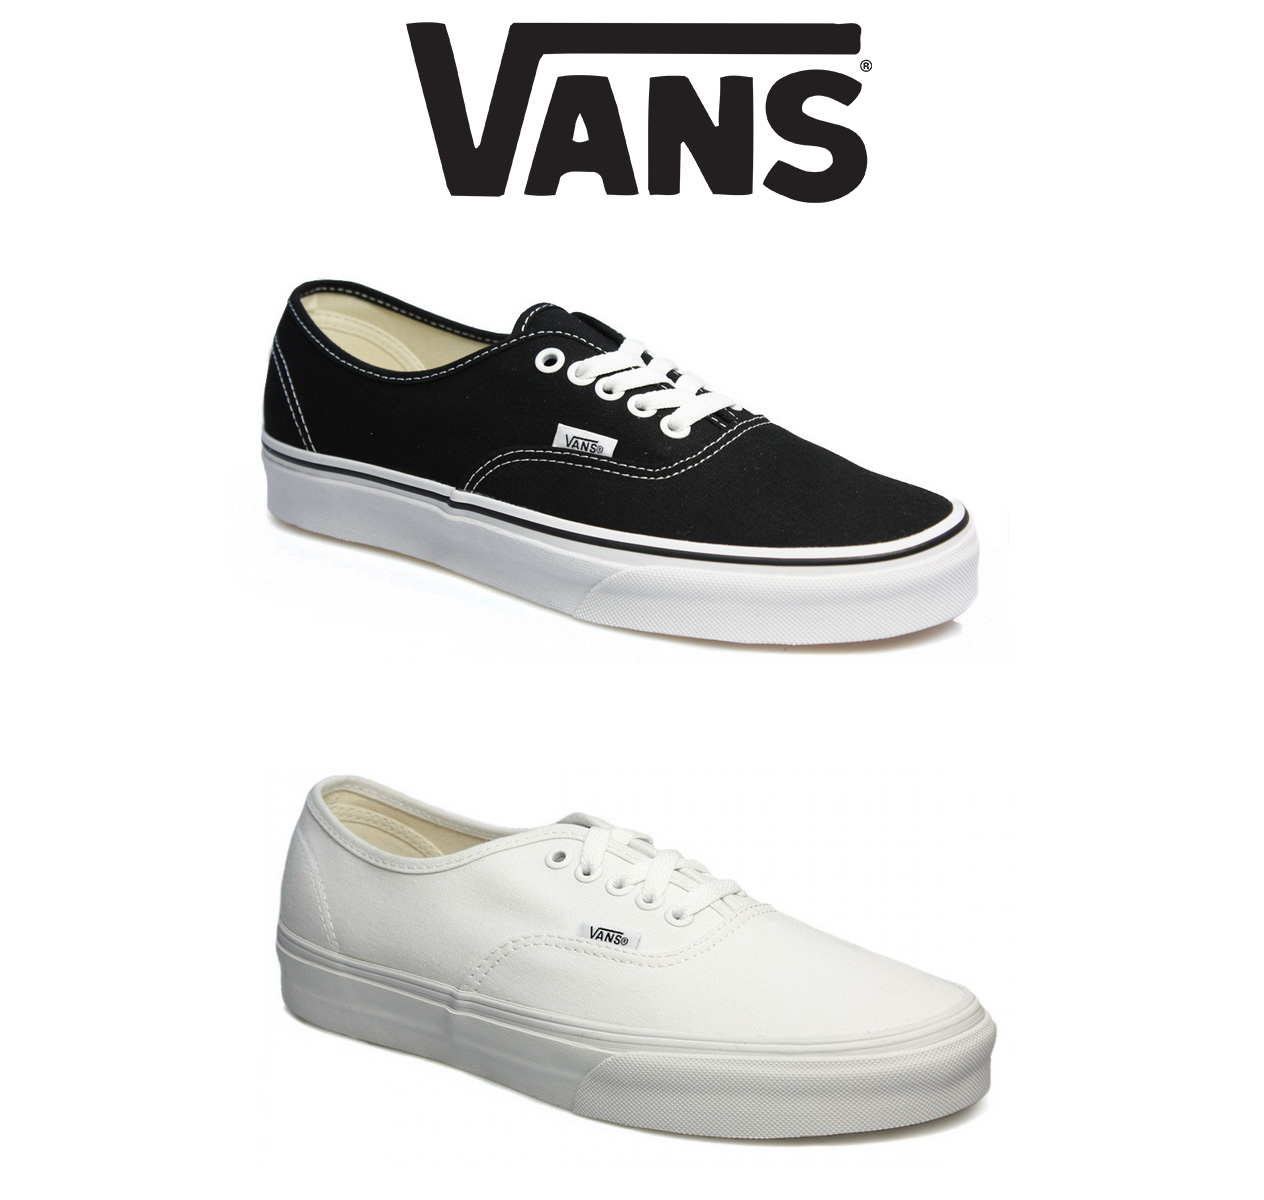 03dee7c975 Featuring tough black or white canvas upper